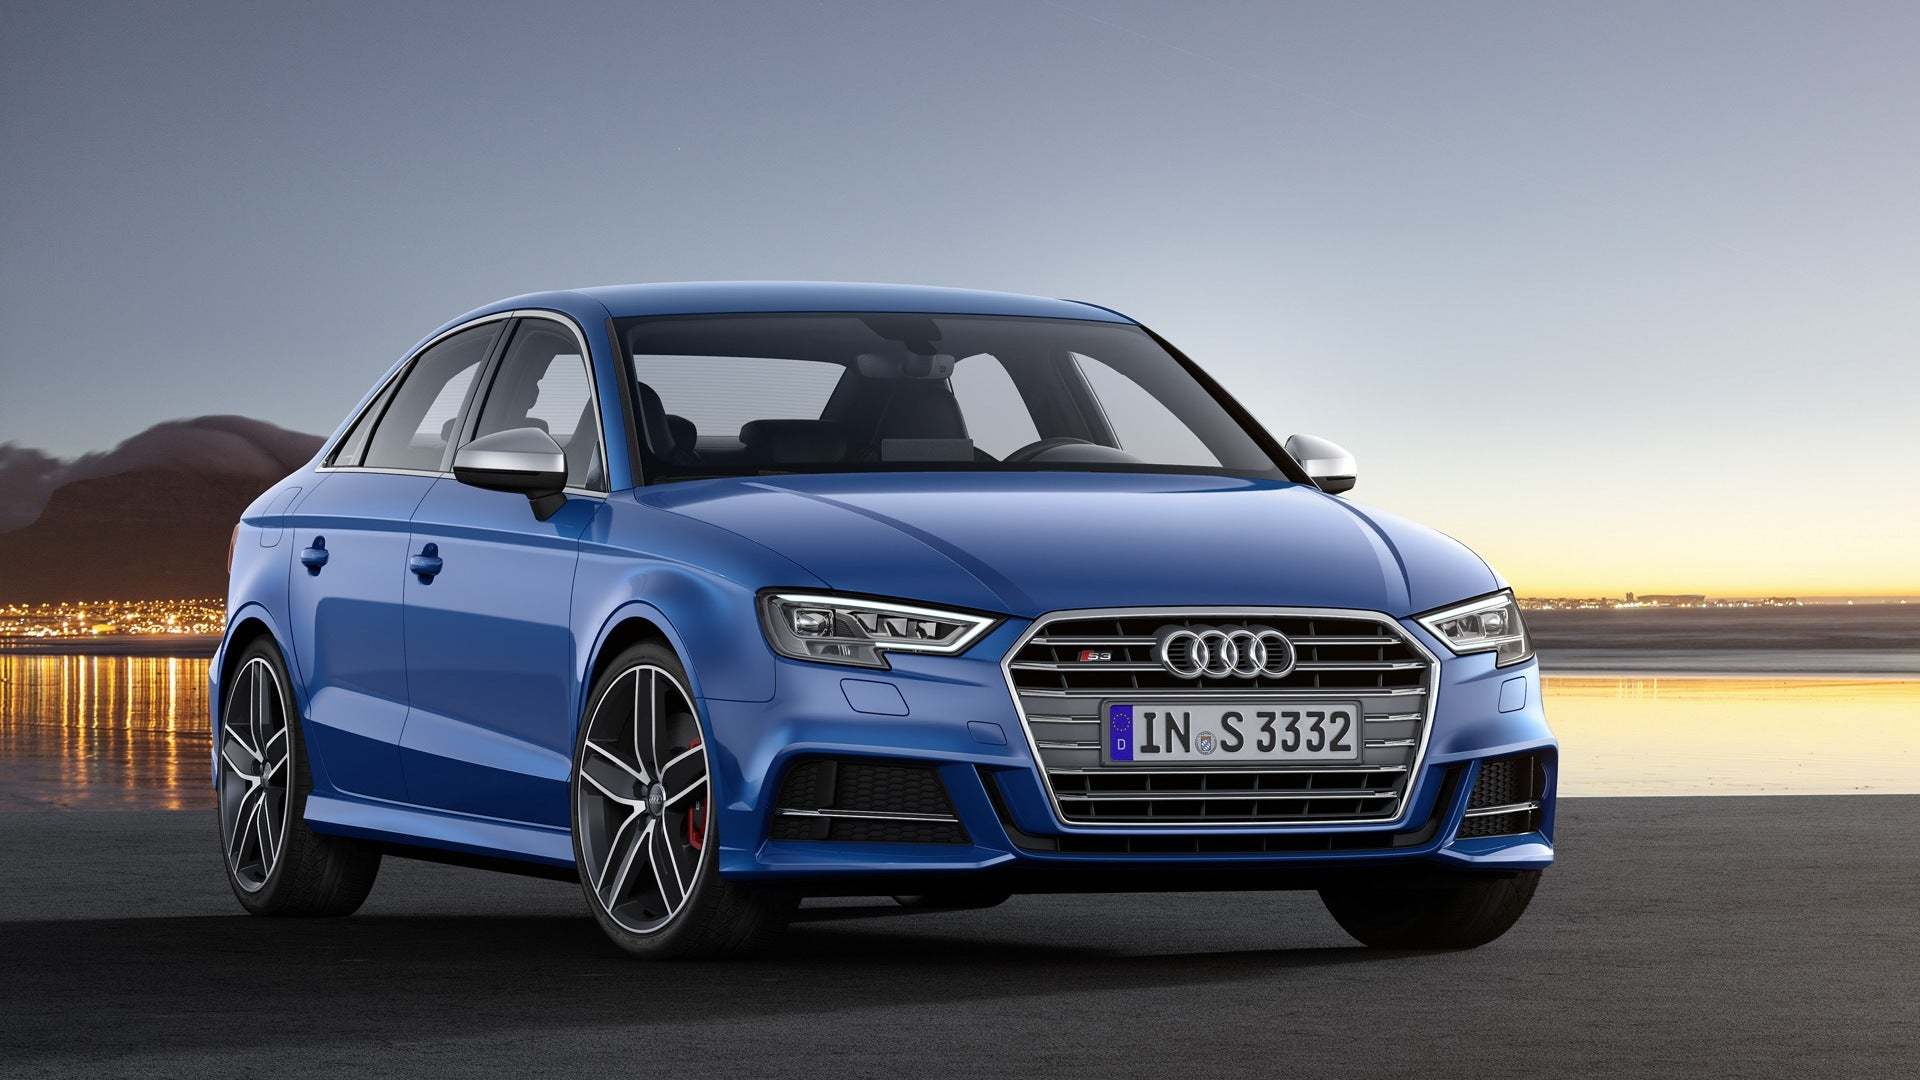 Is the Audi S3 Worth It Exterior Styling